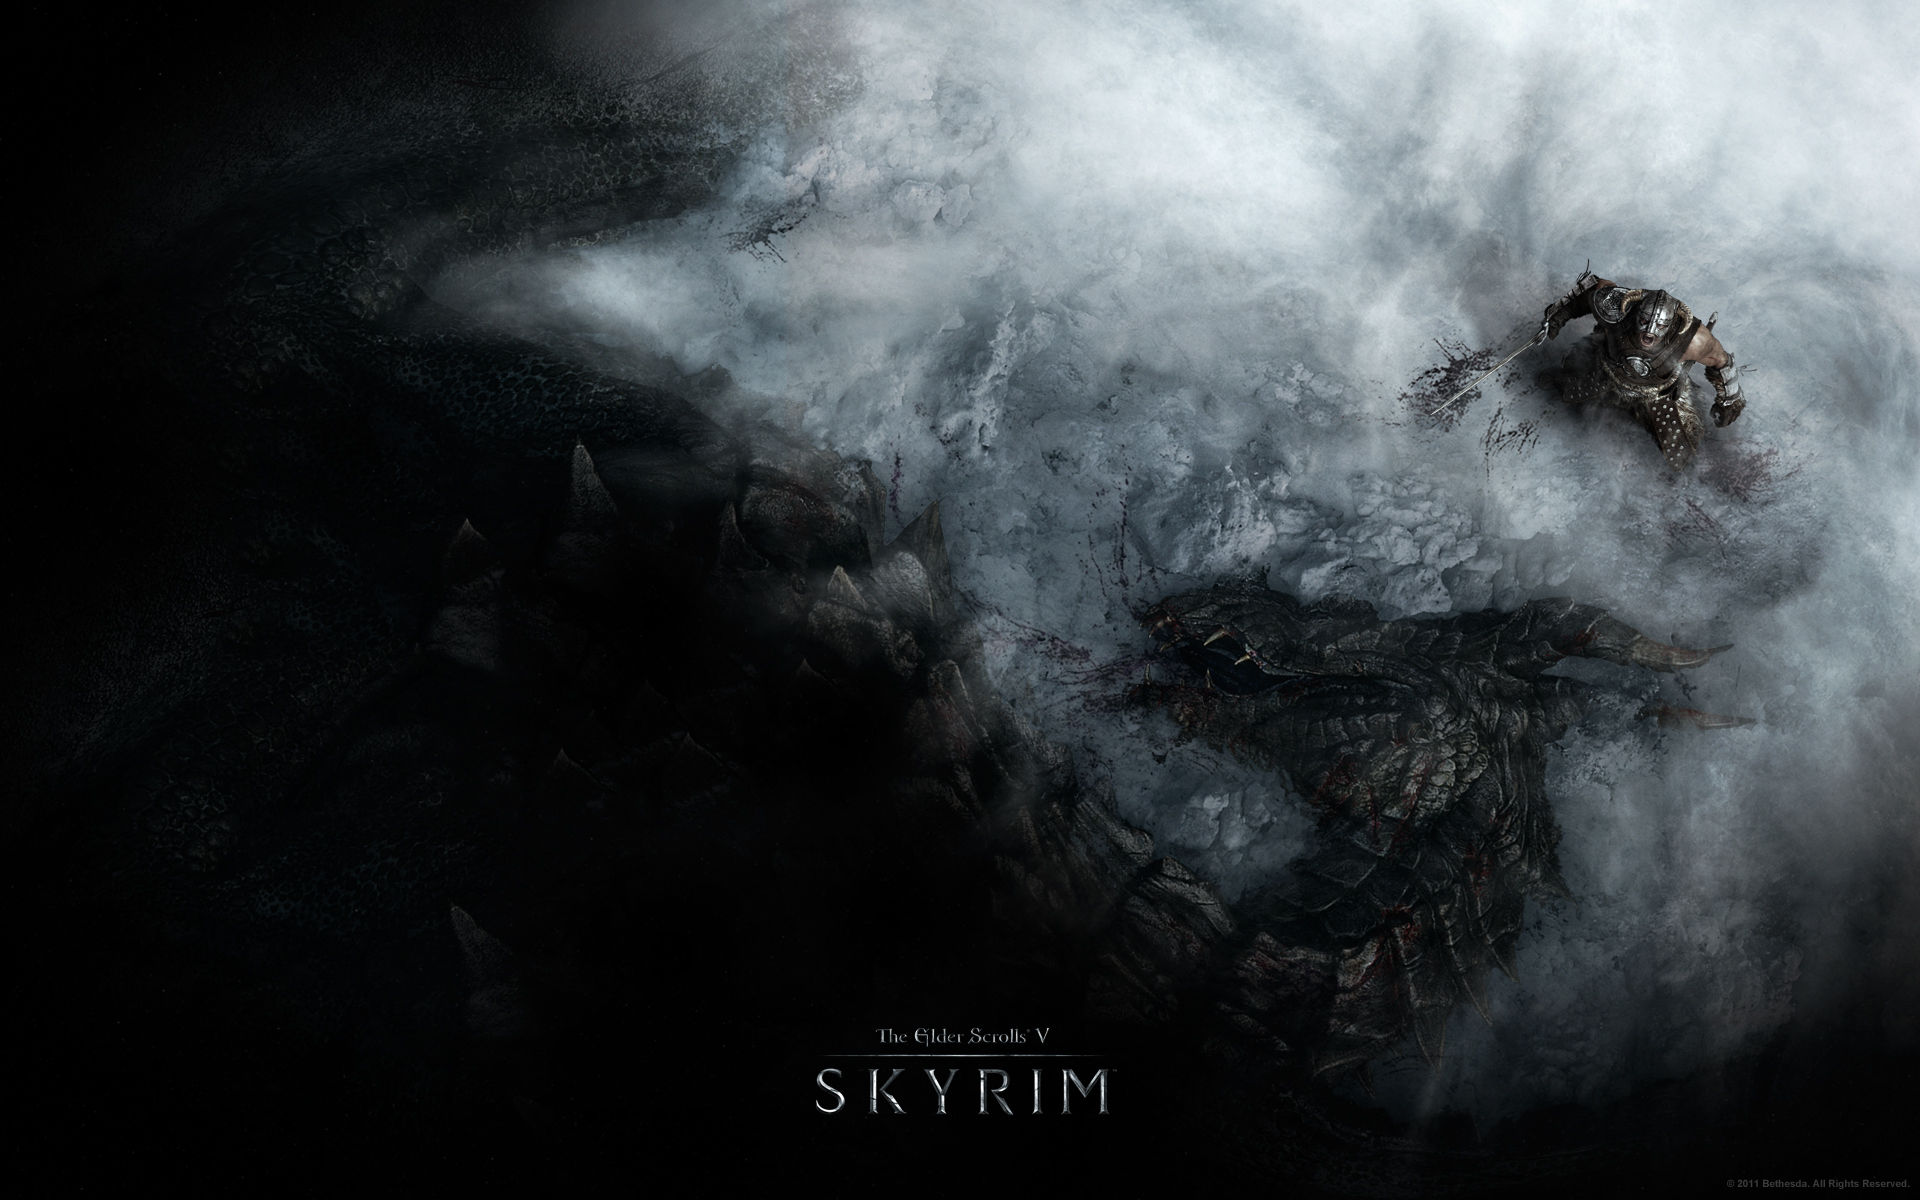 Skyrim Review – The Only One You'll Ever Need To Read